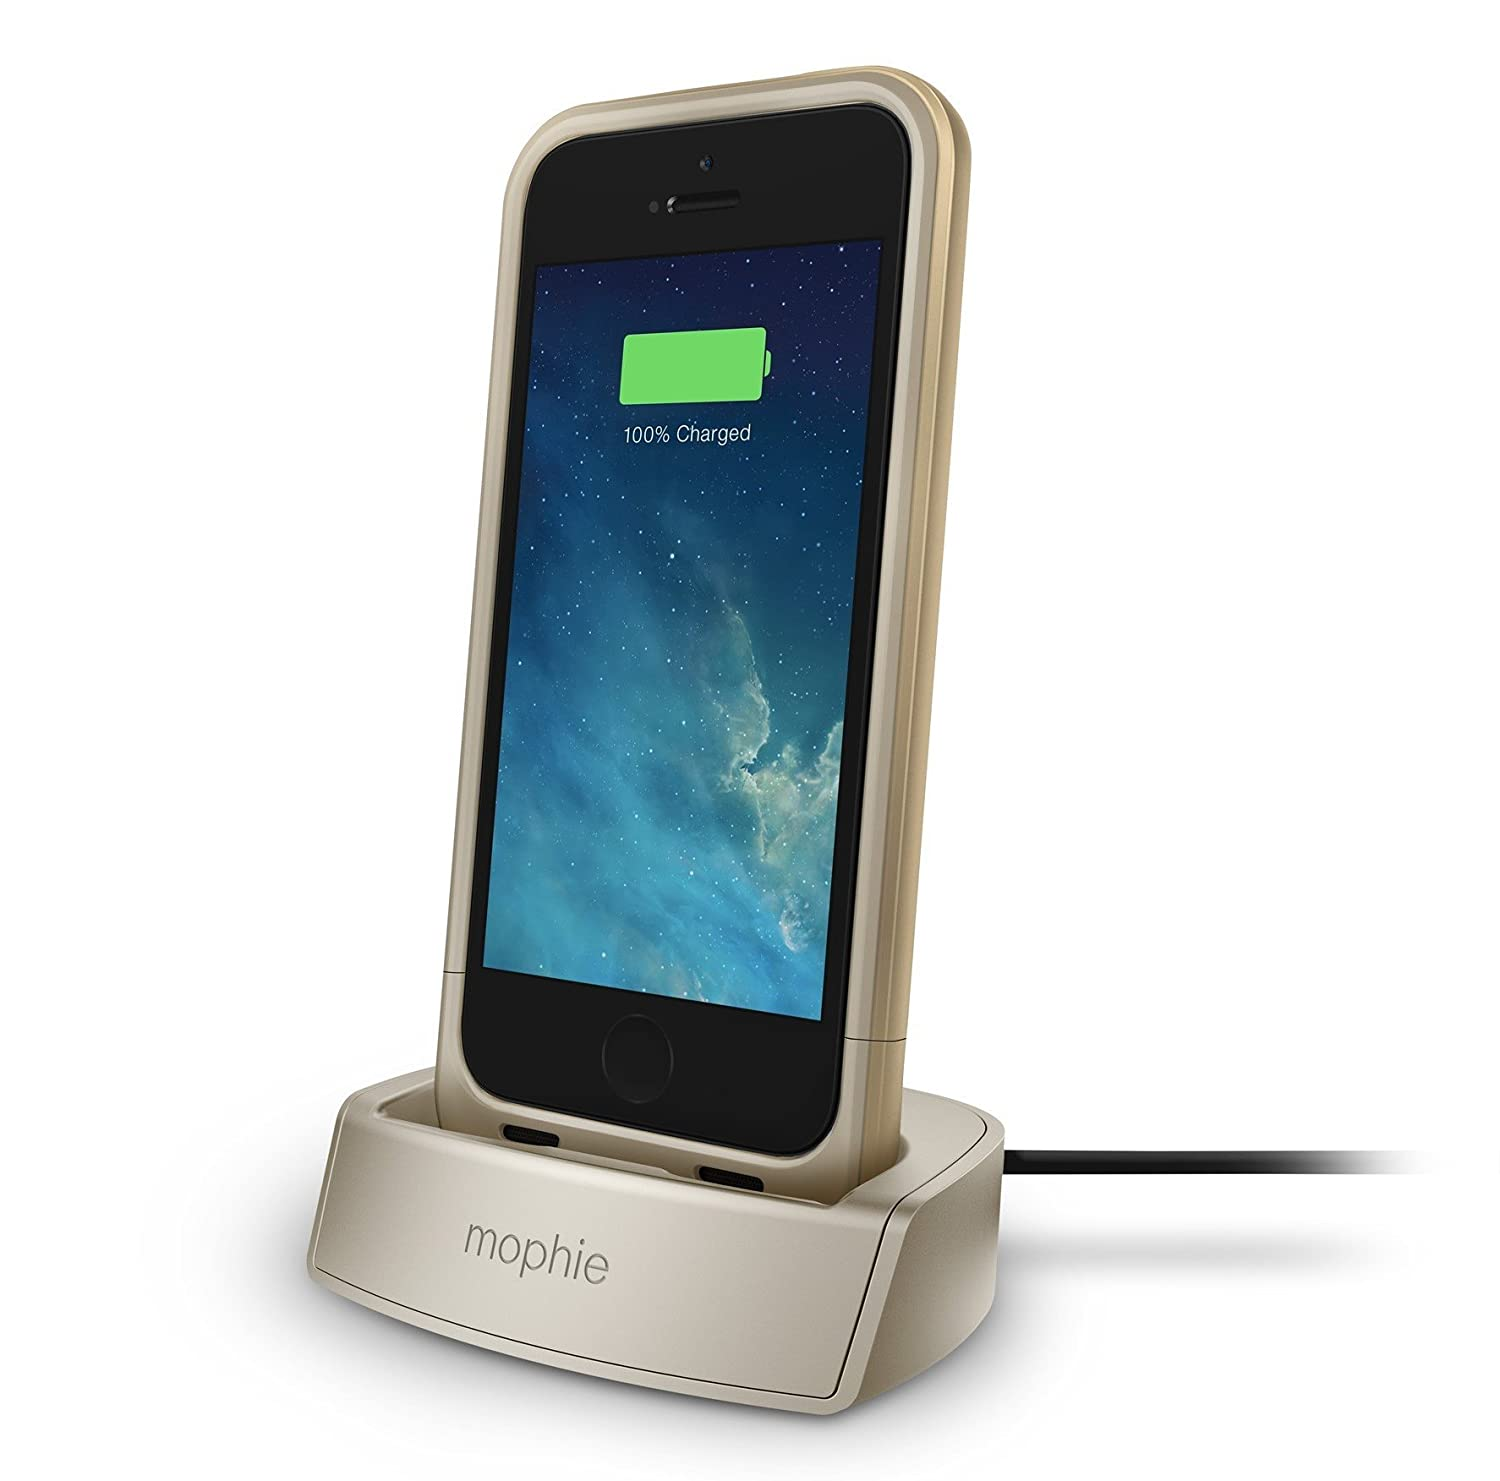 sports shoes 52c25 be113 mophie 2308 Juice Pack Dock for iPhone 5/5s/SE - Gold: Amazon.in ...